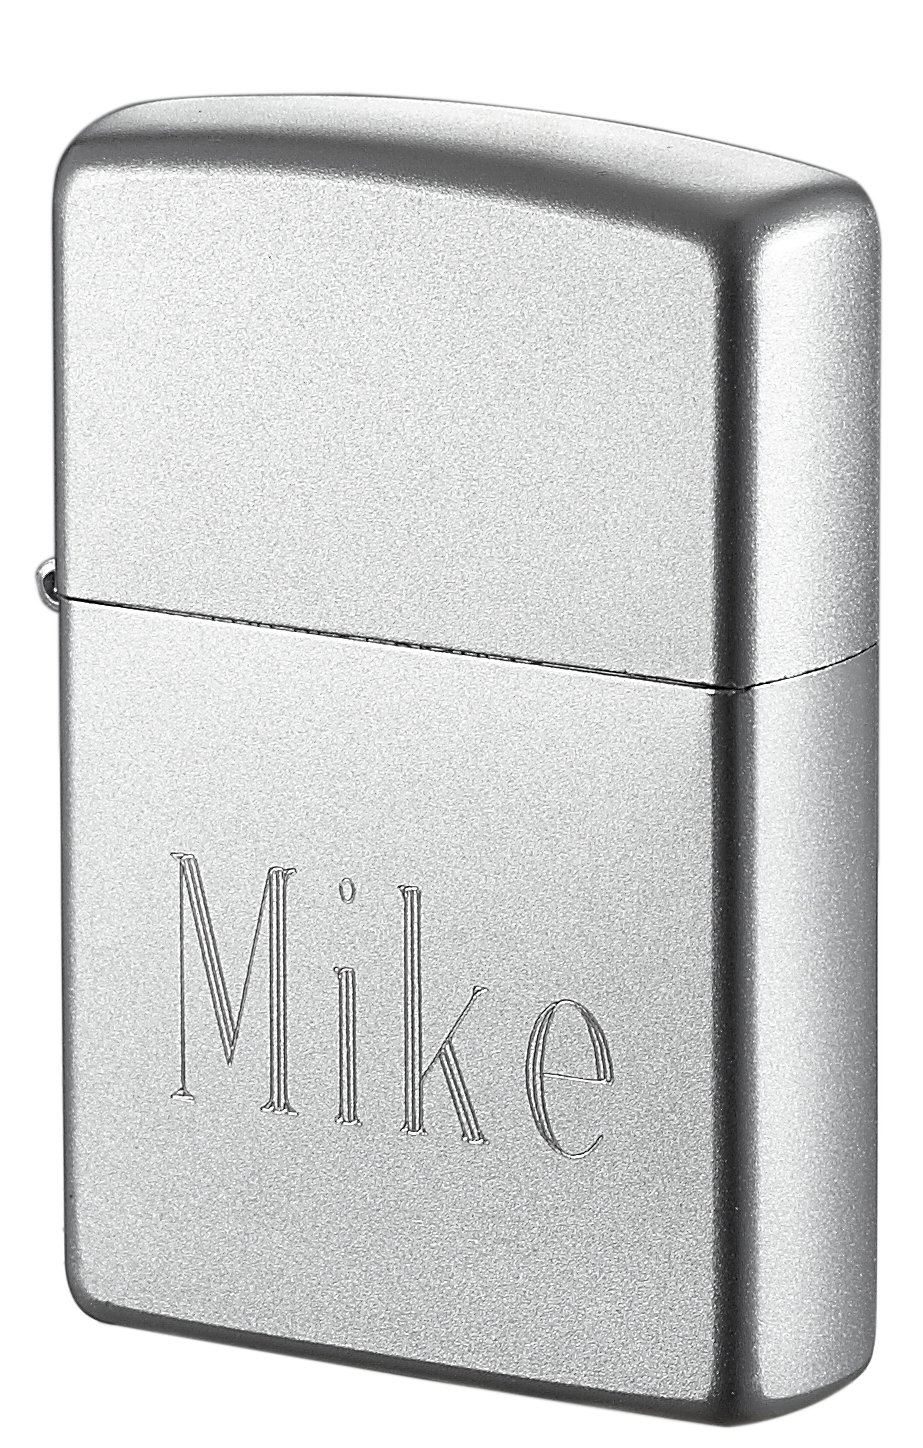 Personalized Zippo Lighter Engraved with Name - Satin Chrome - Free Engraving